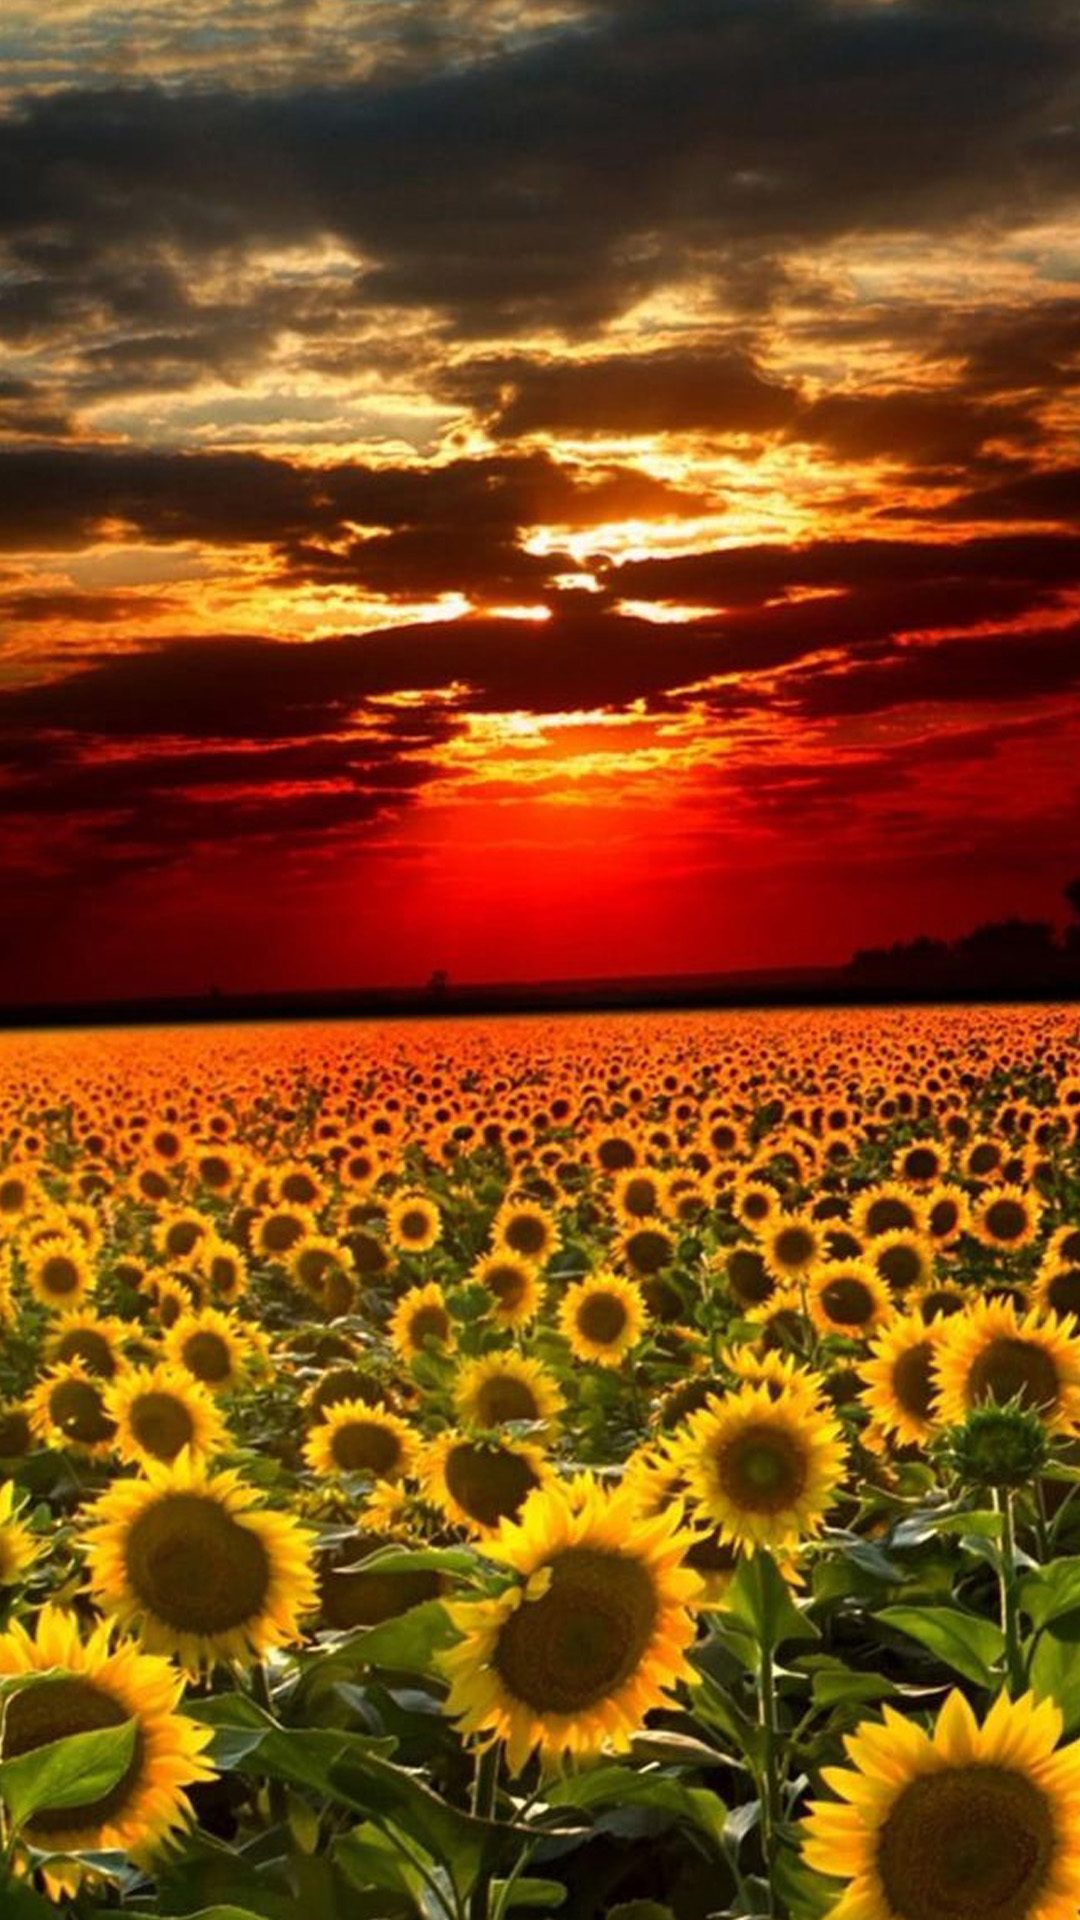 Sunflower Field Landscape IPhone 6 Wallpaper Download IPhone 1080x1920